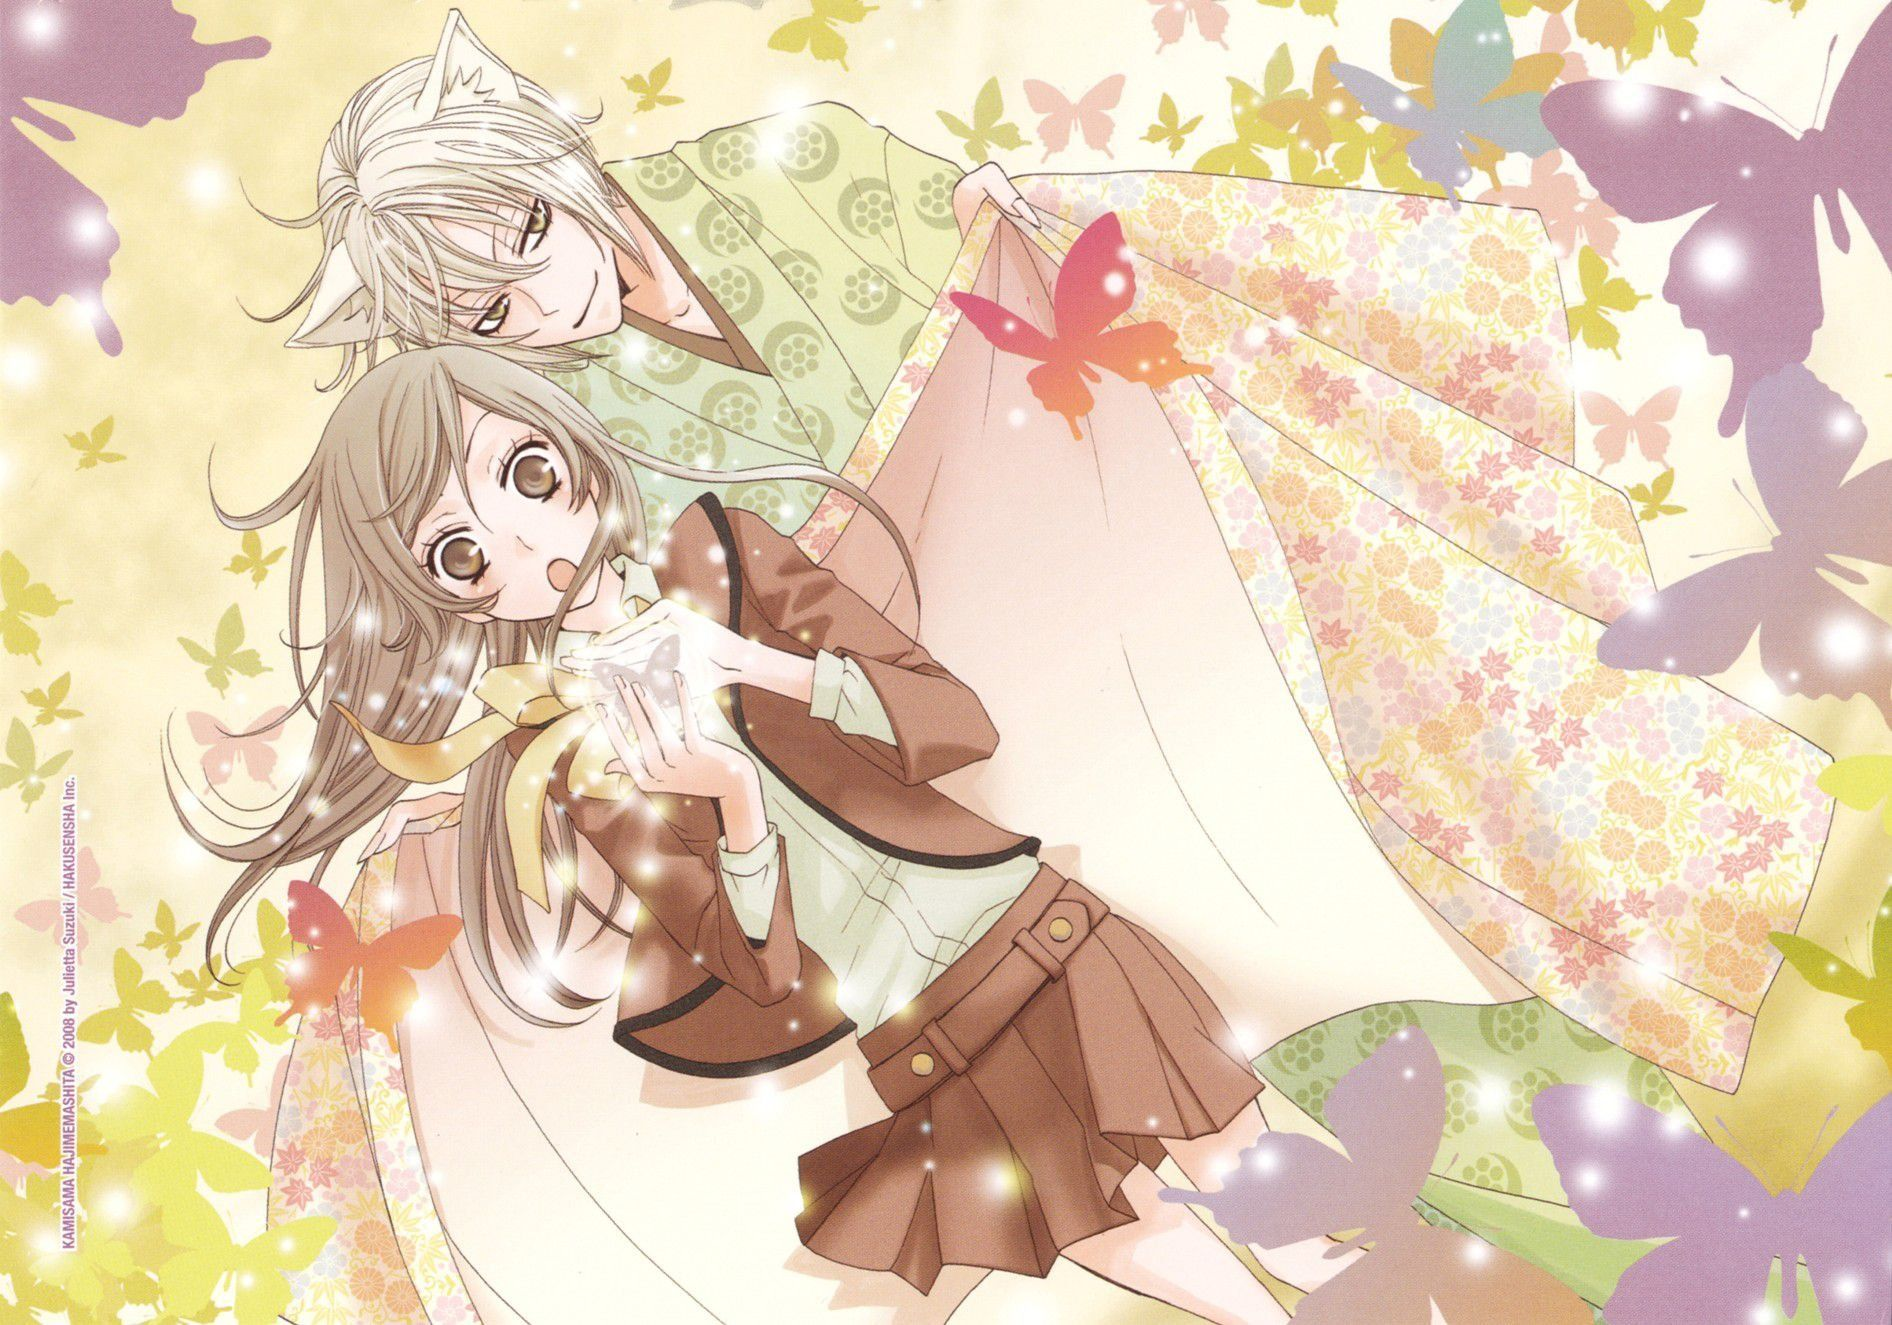 Pin By The Wallpaper Hd On Kamisama Hajimemashita Kamisama Kiss Anime Kamisama Kiss Anime Lovers